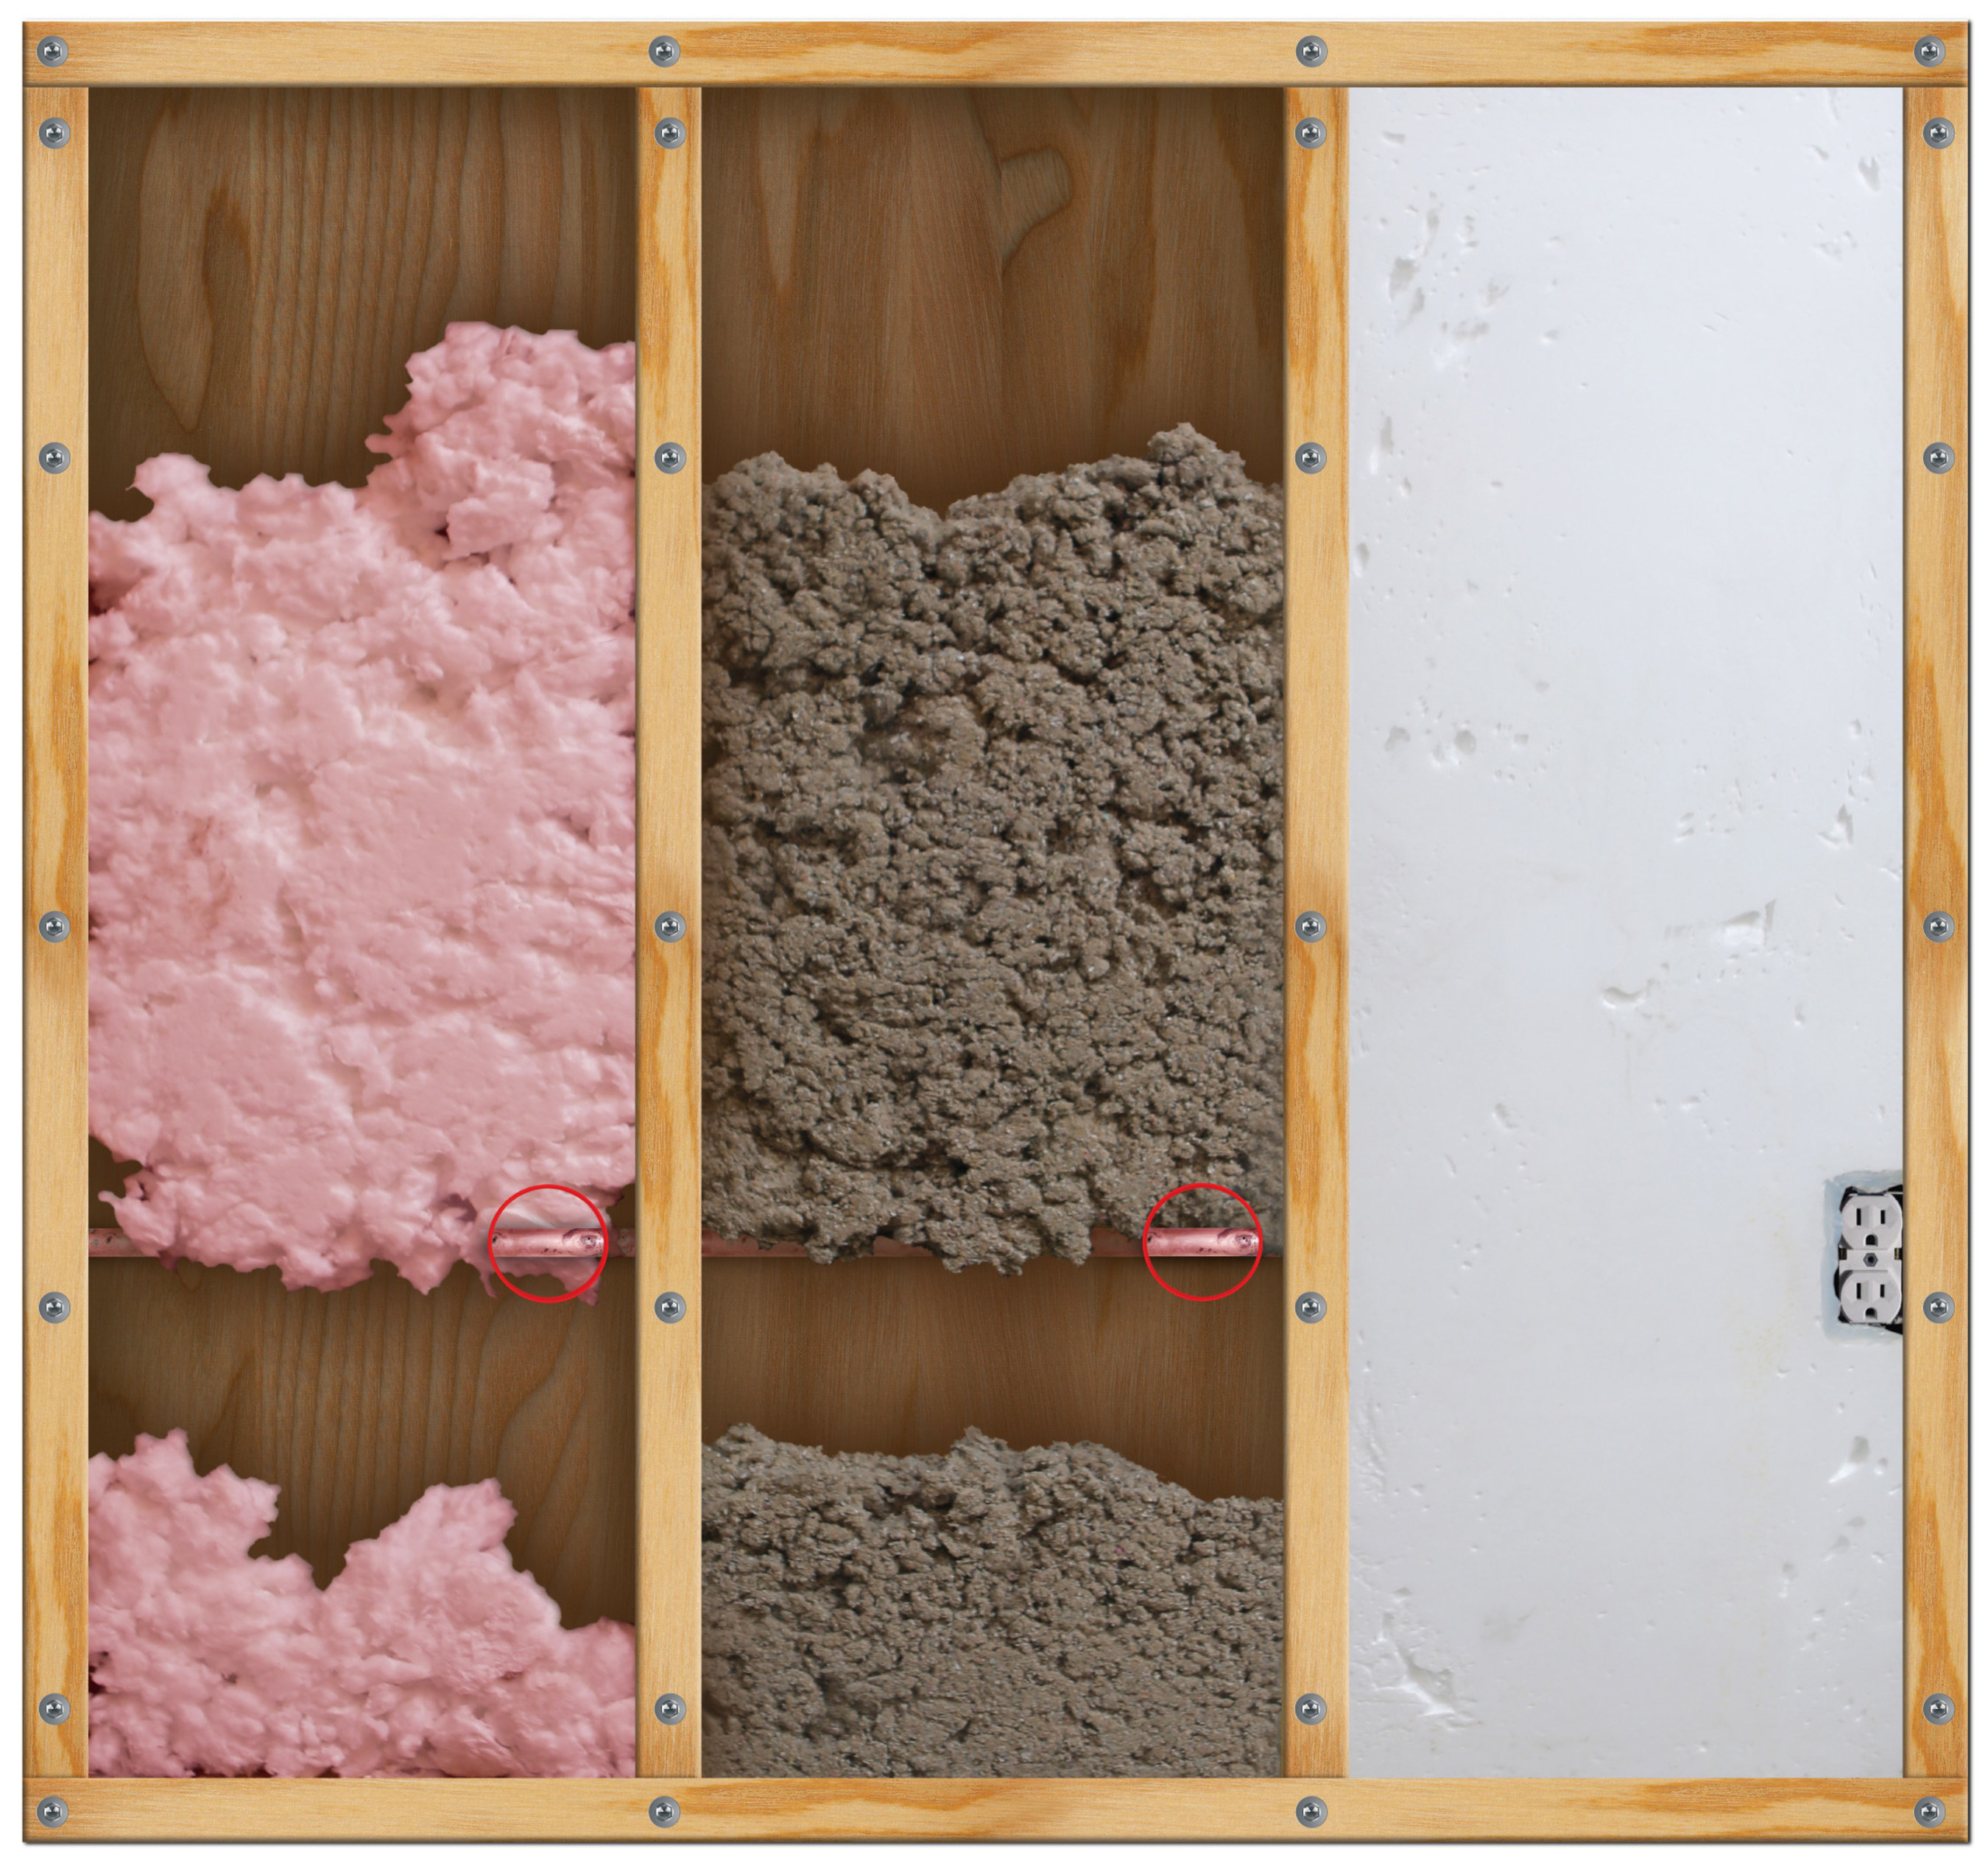 3 Panel comparison showing premium foam to other types of insulation materials.